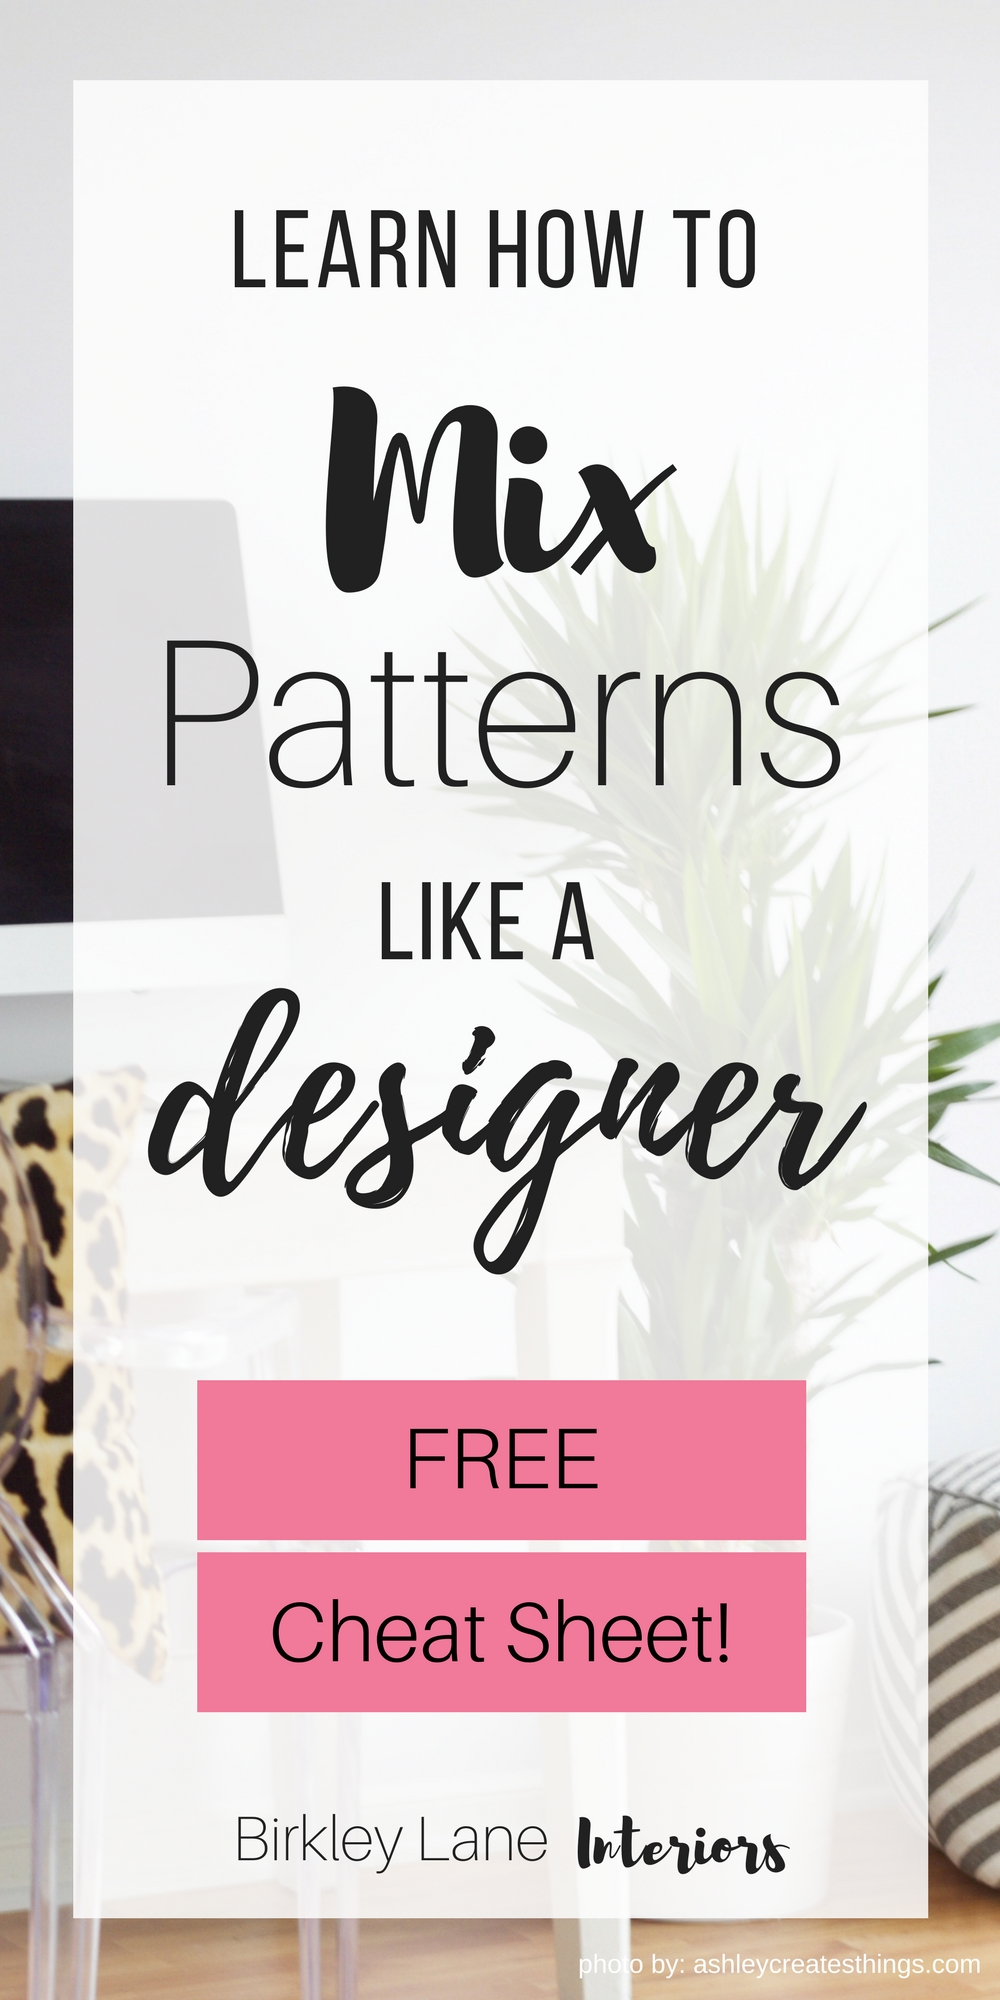 End the frustration that comes with trying to mix patterns as you decorate!  Get my FREE cheat sheet and mix patterns just like a designer!